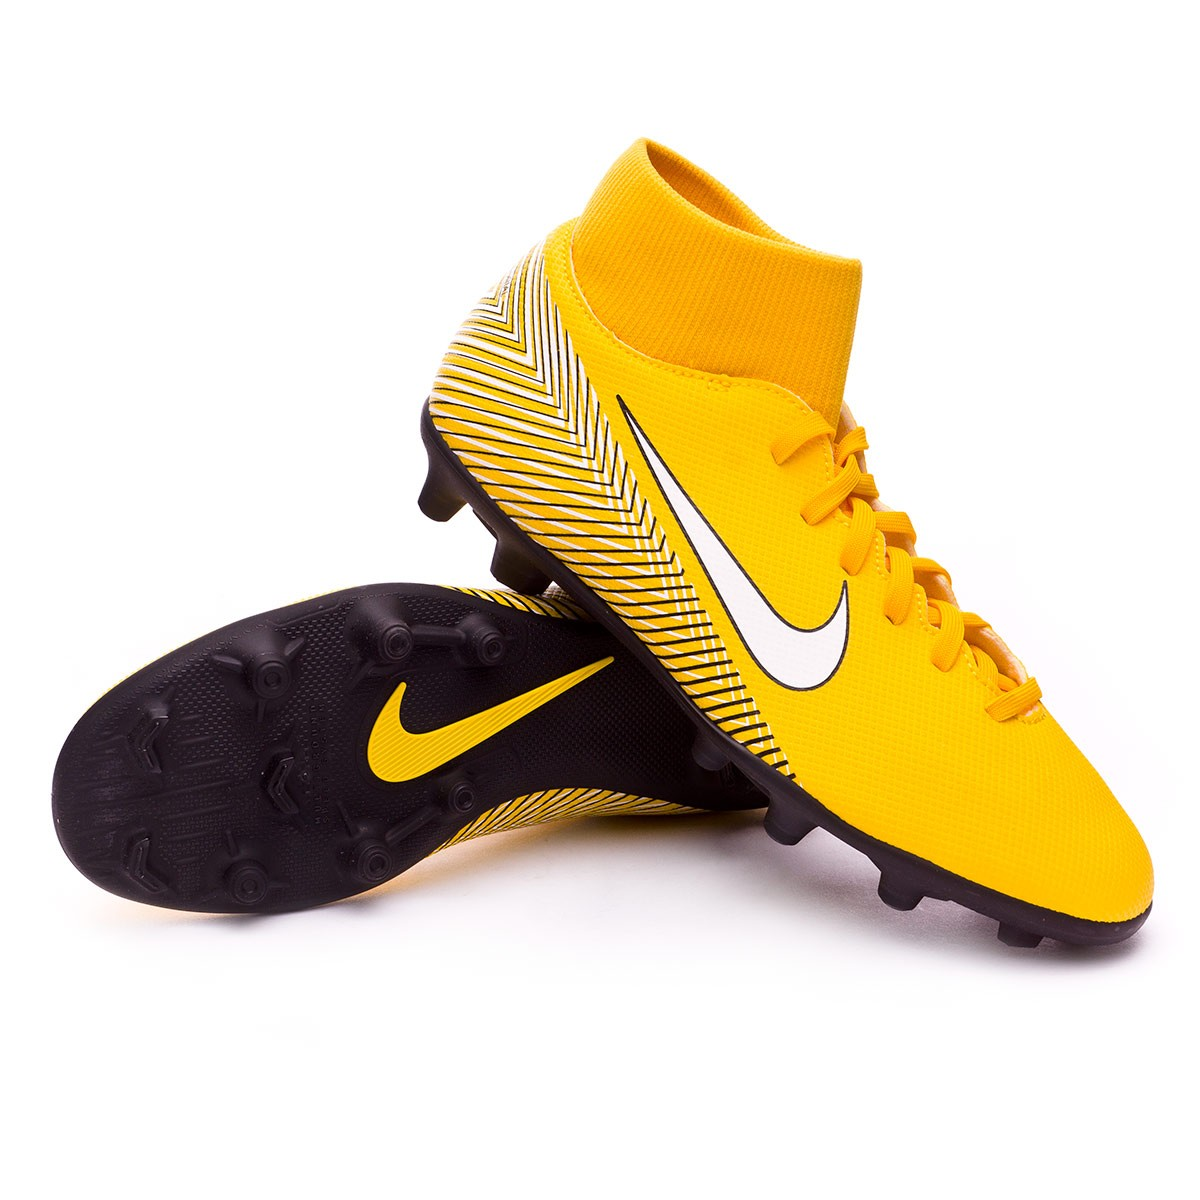 714ee84a1ee new zealand nike mercurial superfly yellow unit 131bd c51d2